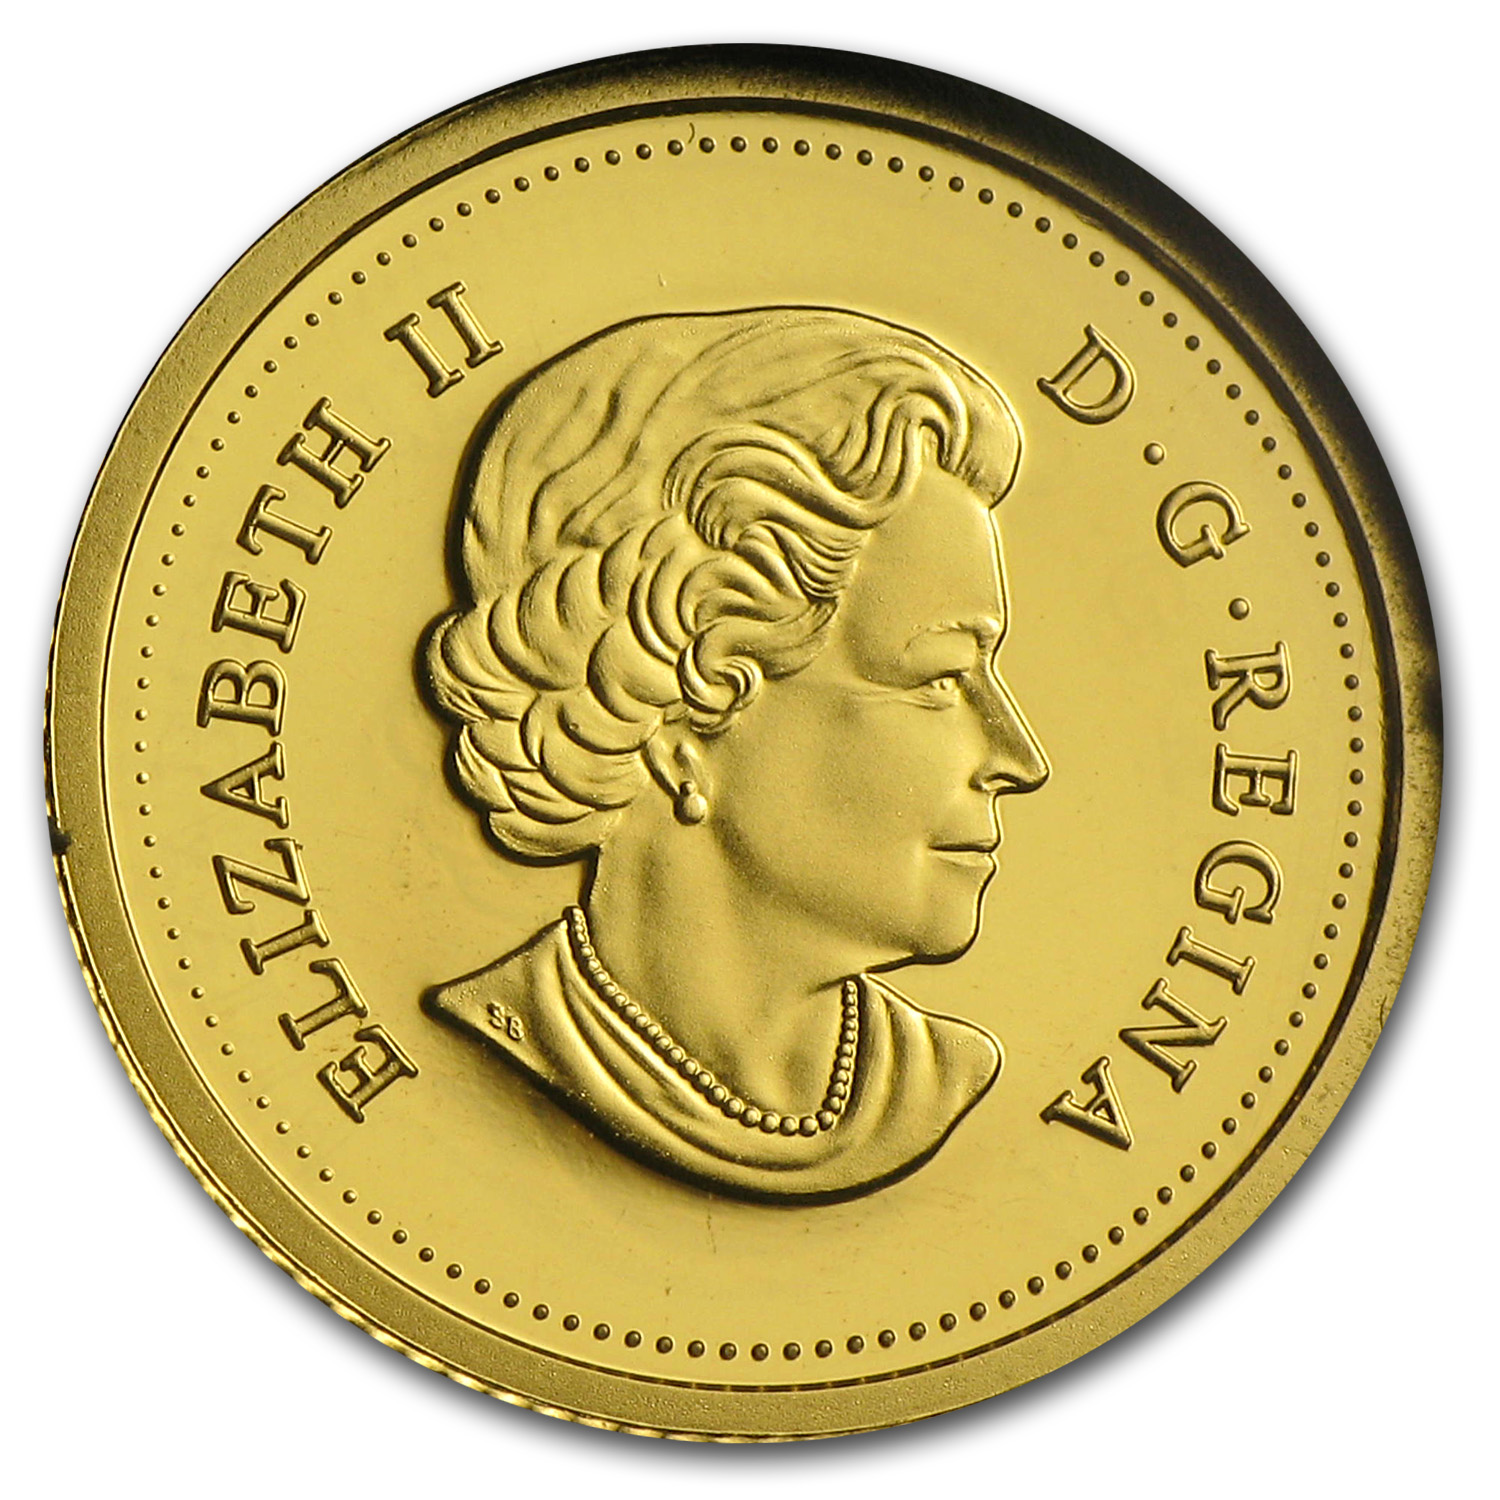 2014 Canada 1/25 oz Proof Gold $0.50 Beaver